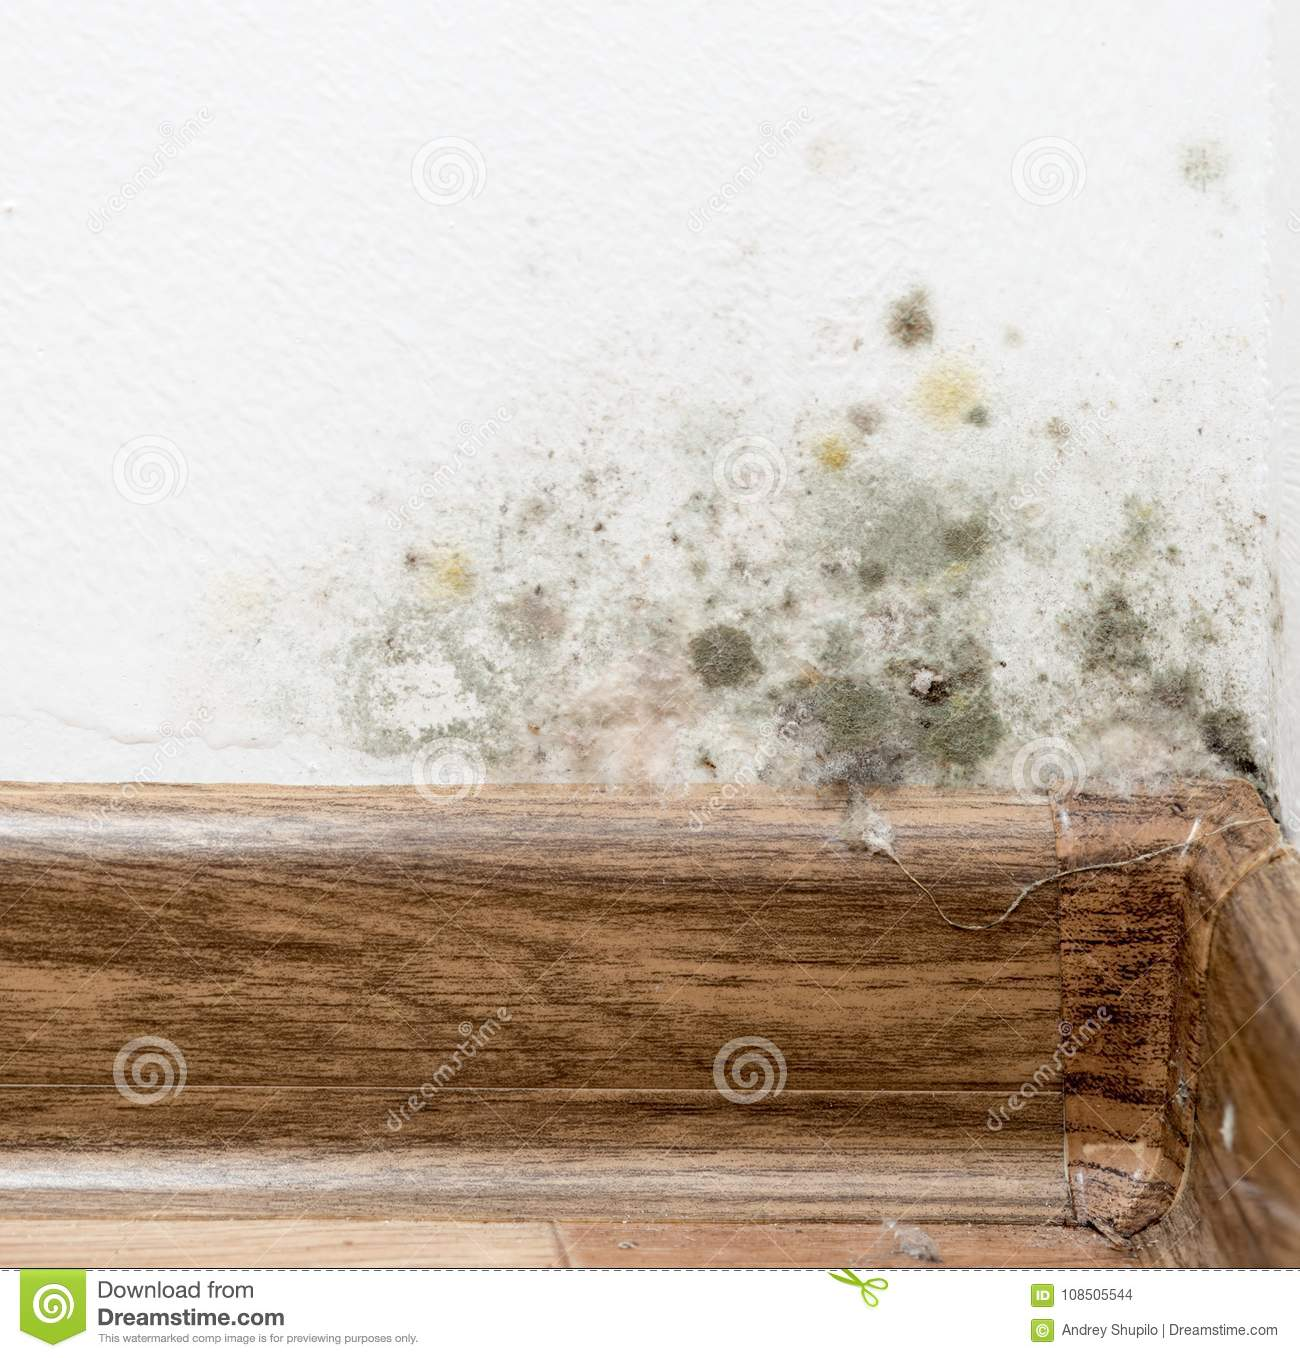 Mold on the white wall in the house